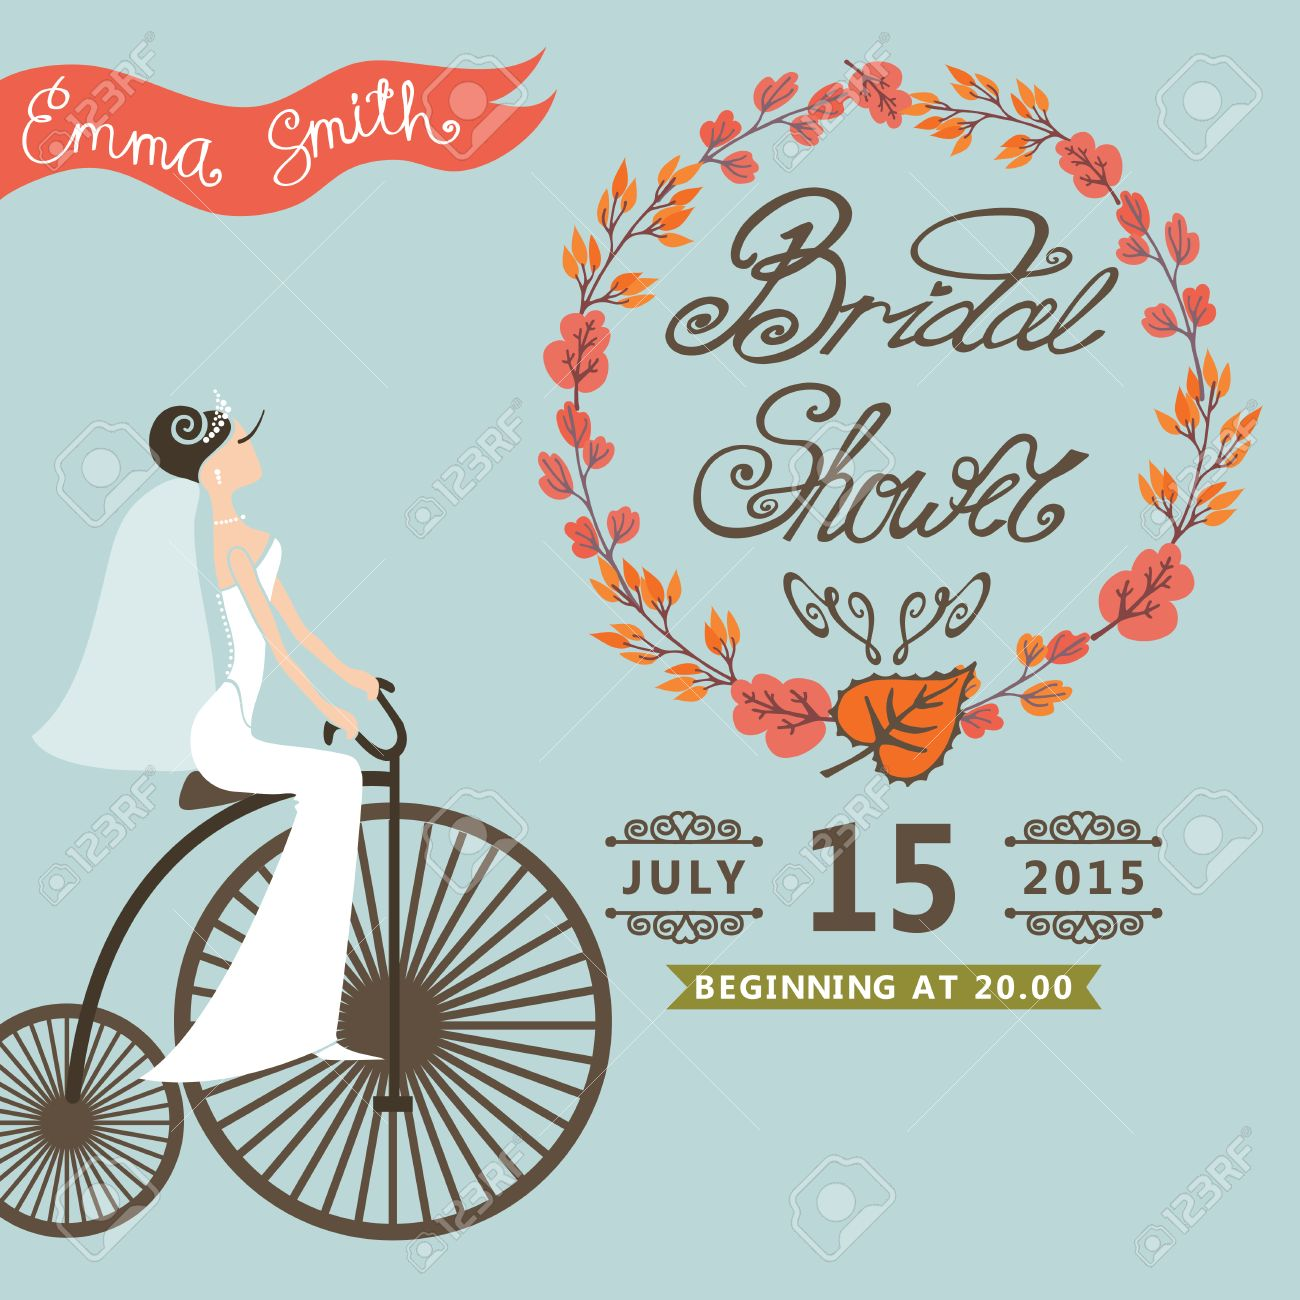 Bridal shower card with bride on retro bicycle and autumn wreath bridal shower card with bride on retro bicycle and autumn wreathntage wedding invitation filmwisefo Choice Image